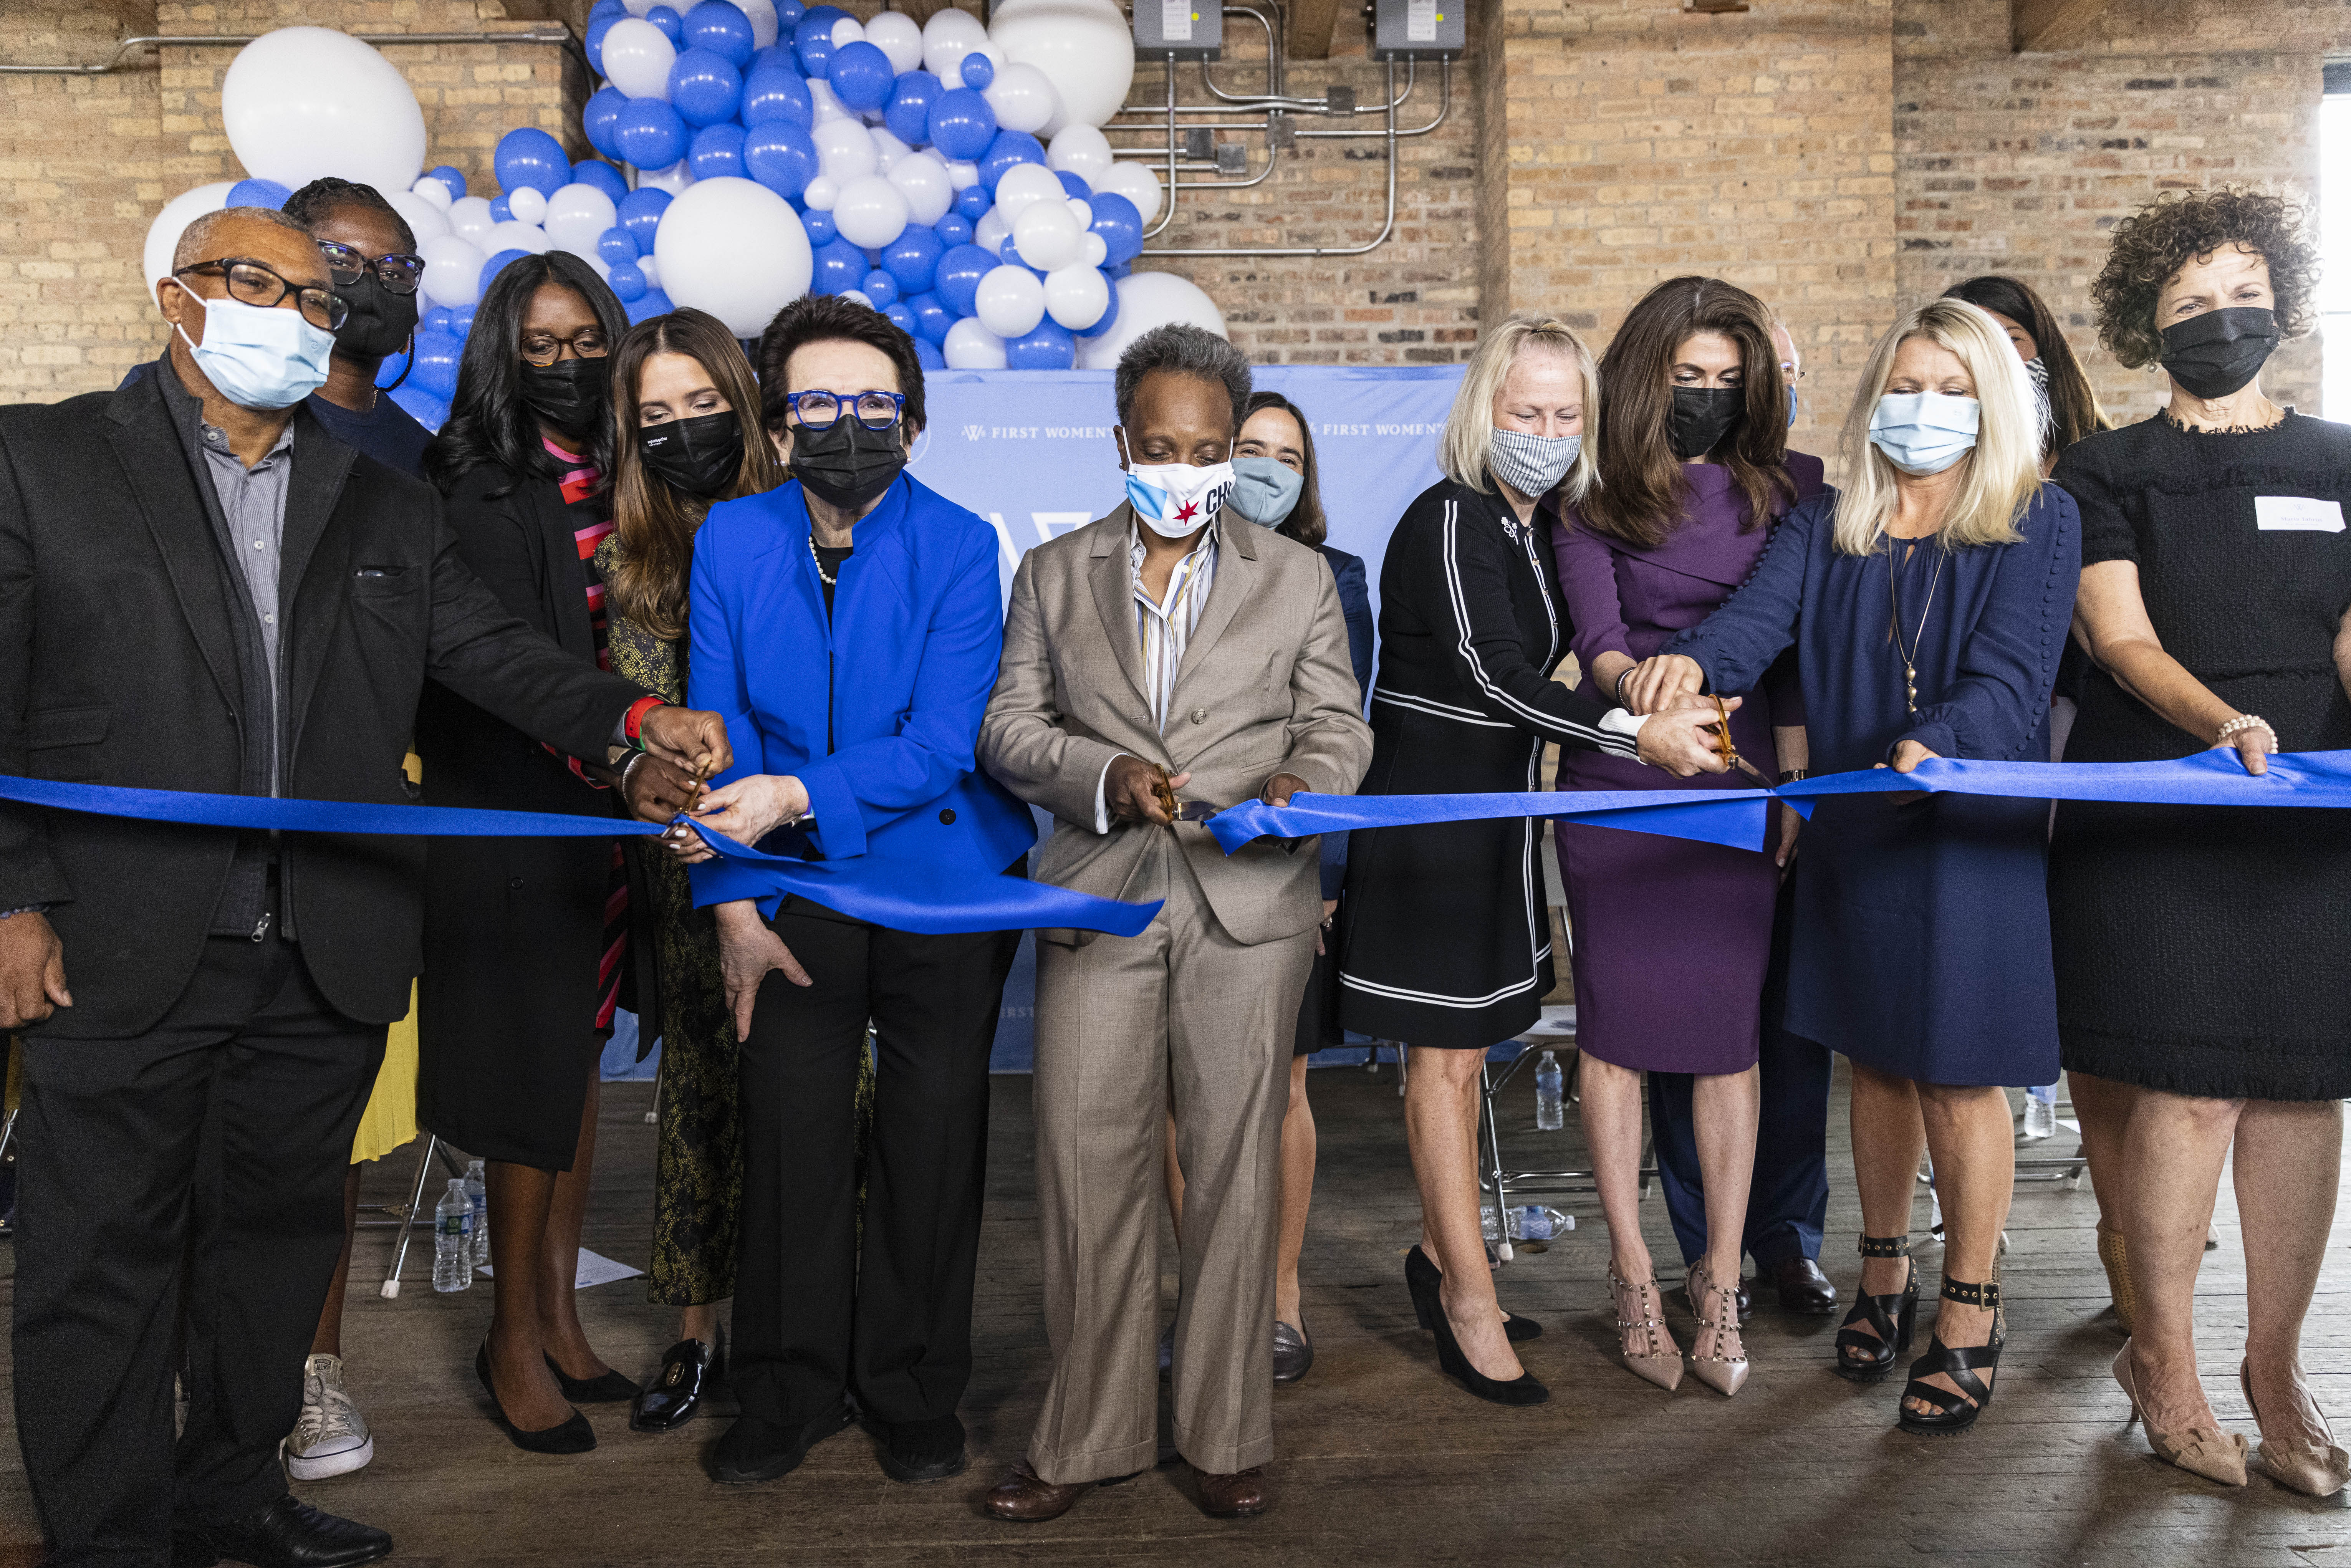 Activists, First Woman's Bank Board Members and City Officials cut the ribbon at a cutting ceremony at the First Women's Bank at 1308 N Elston Ave in Goose Island